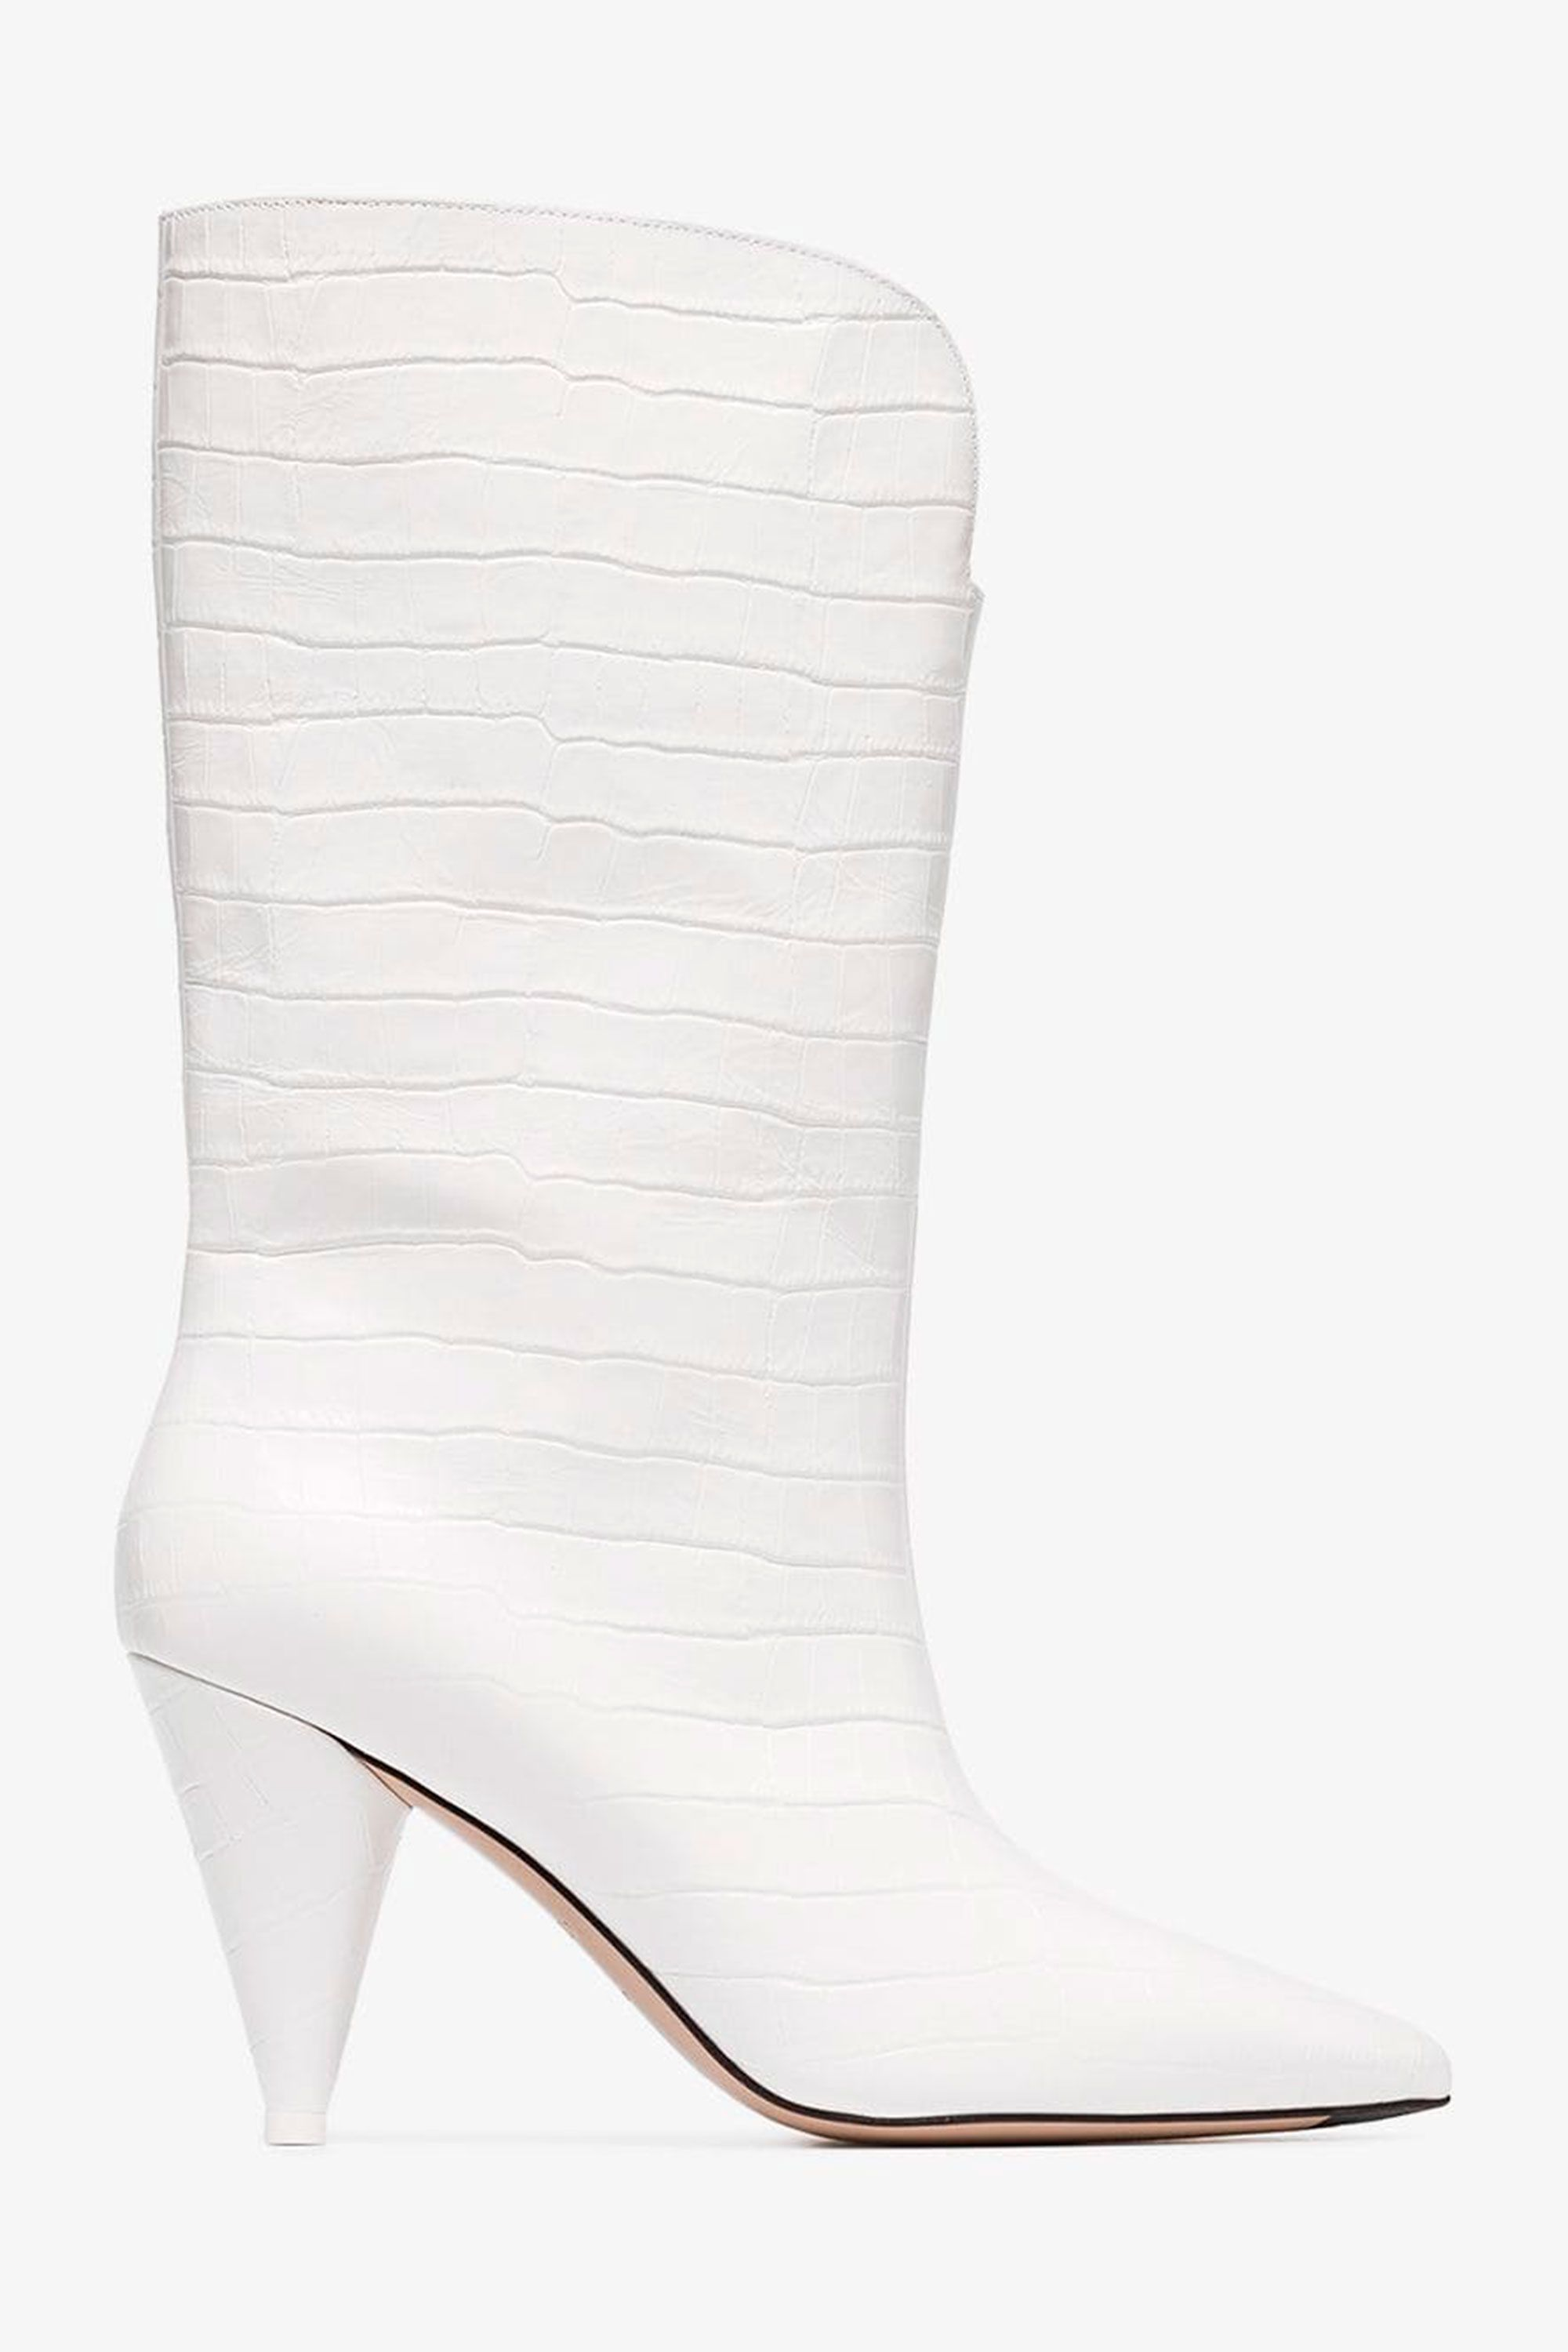 10 best white boots to buy for autumn 2018 – How to wear white boots 947ab296e7c7